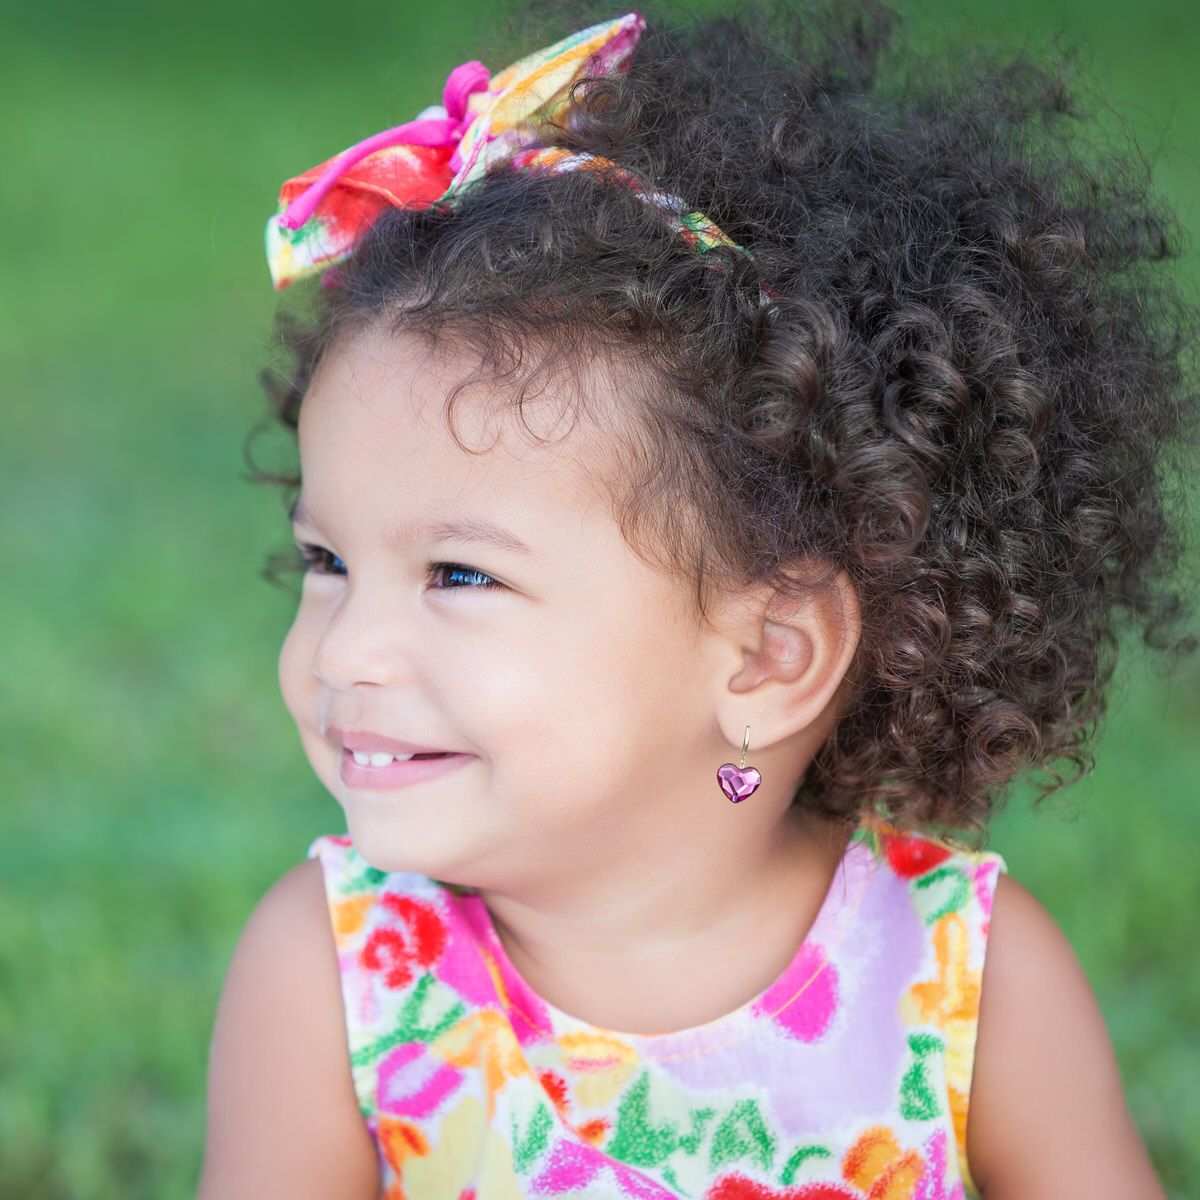 Side portrait of a small hispanic girl with an afro hairstyle smiling with diffused green grass background